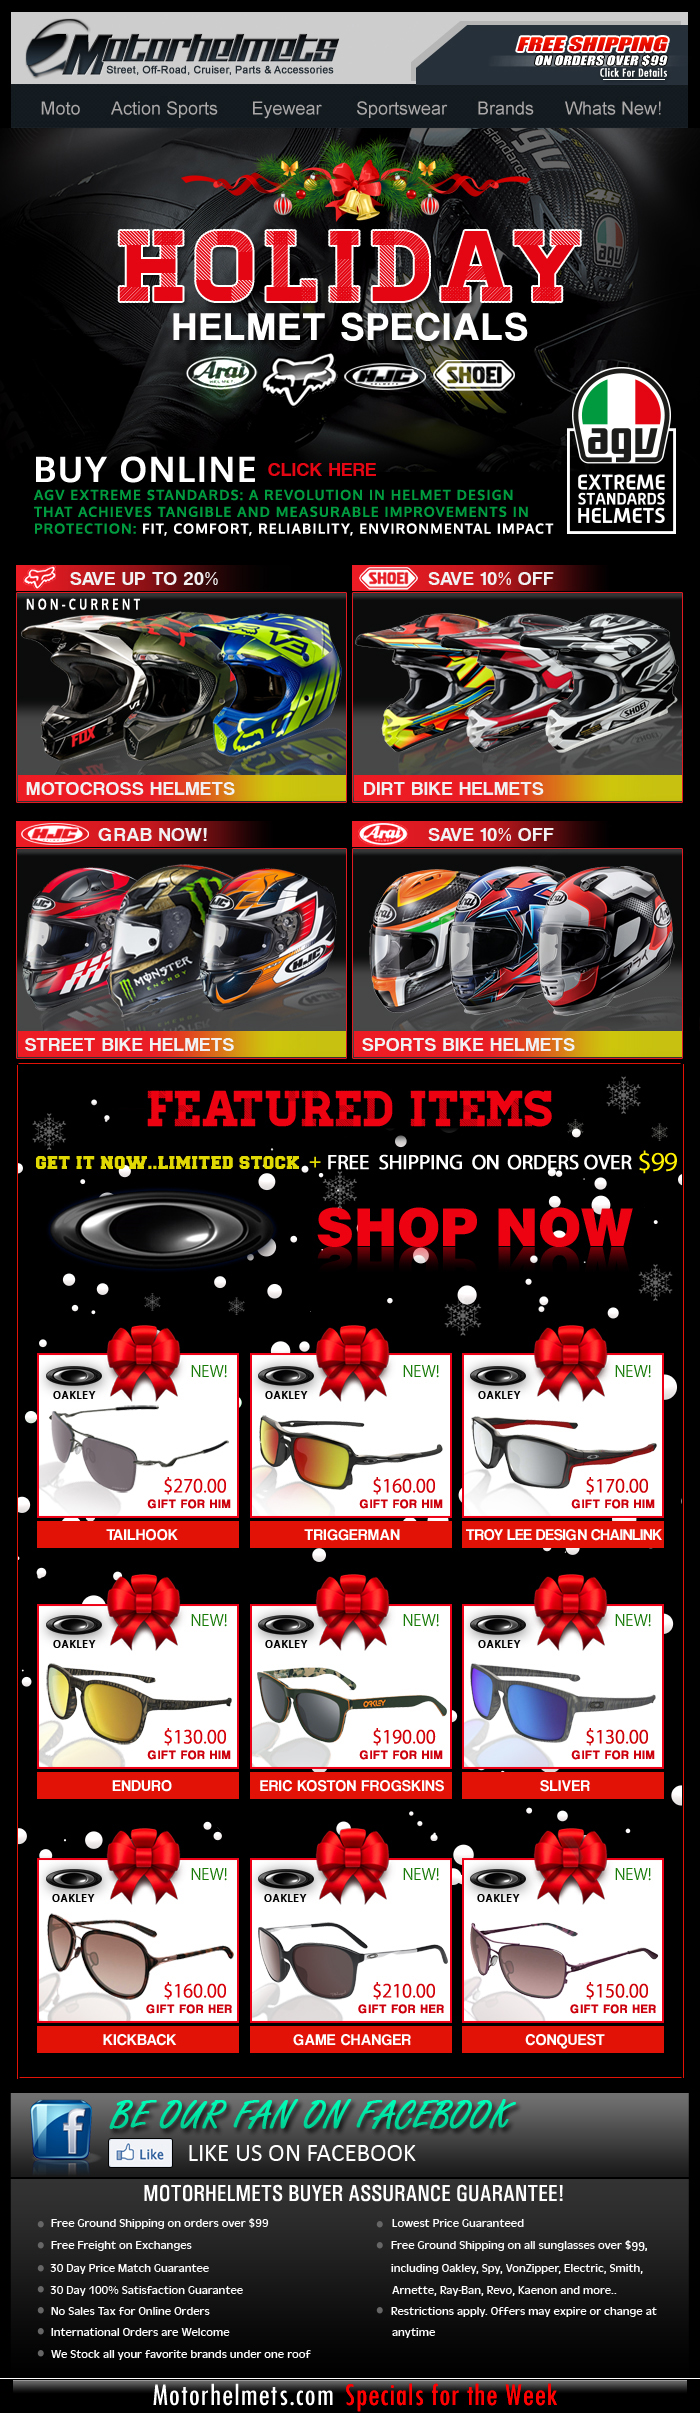 Holiday Helmet Specials...Up to 20% Off on Select Brands!